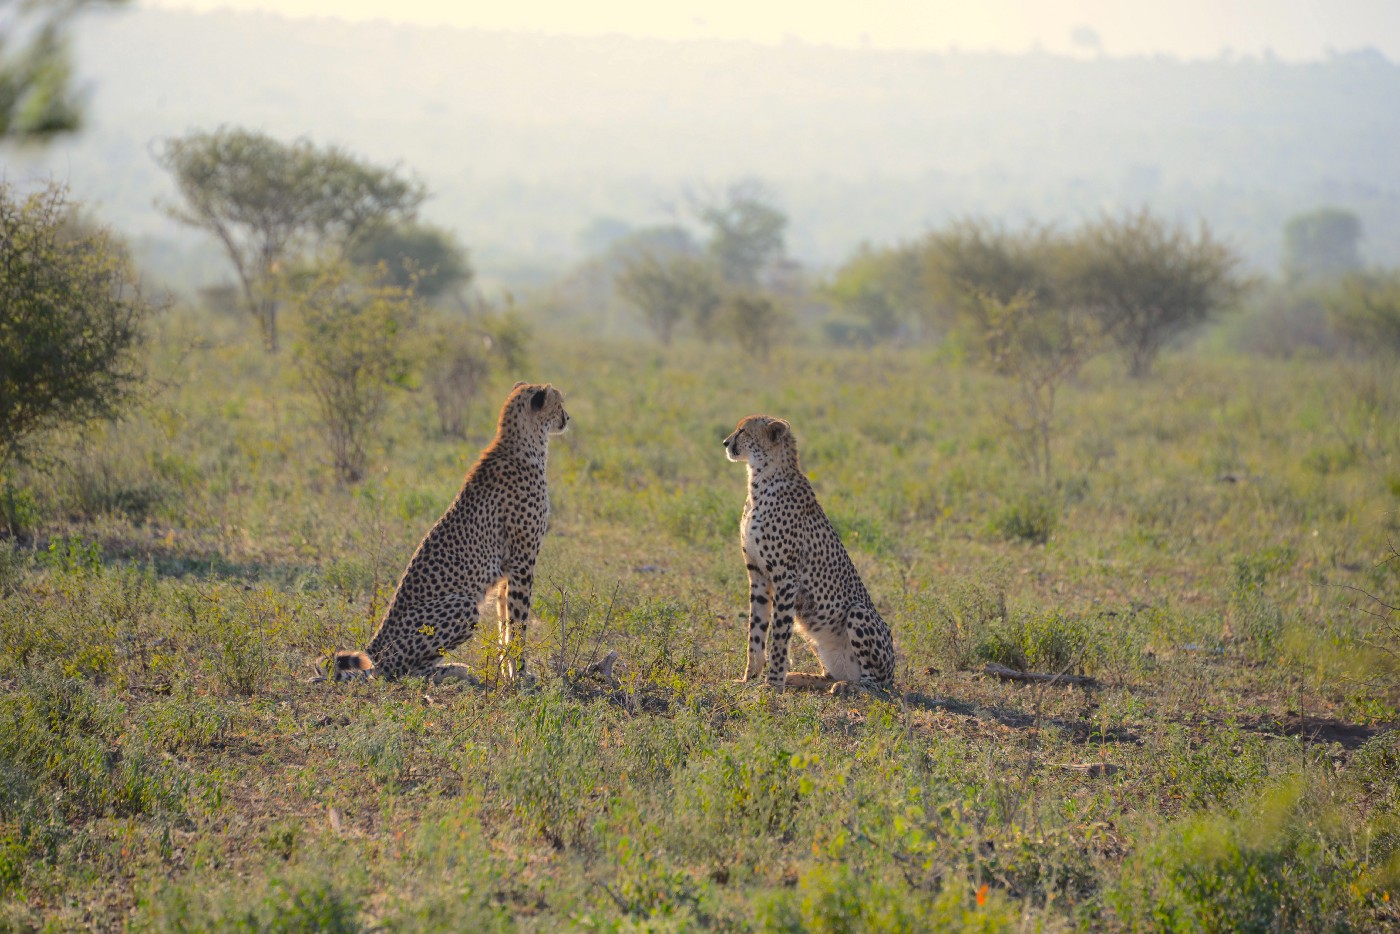 Two cheetahs sitting opposite each other in a field, appearing like they are having a conversation.